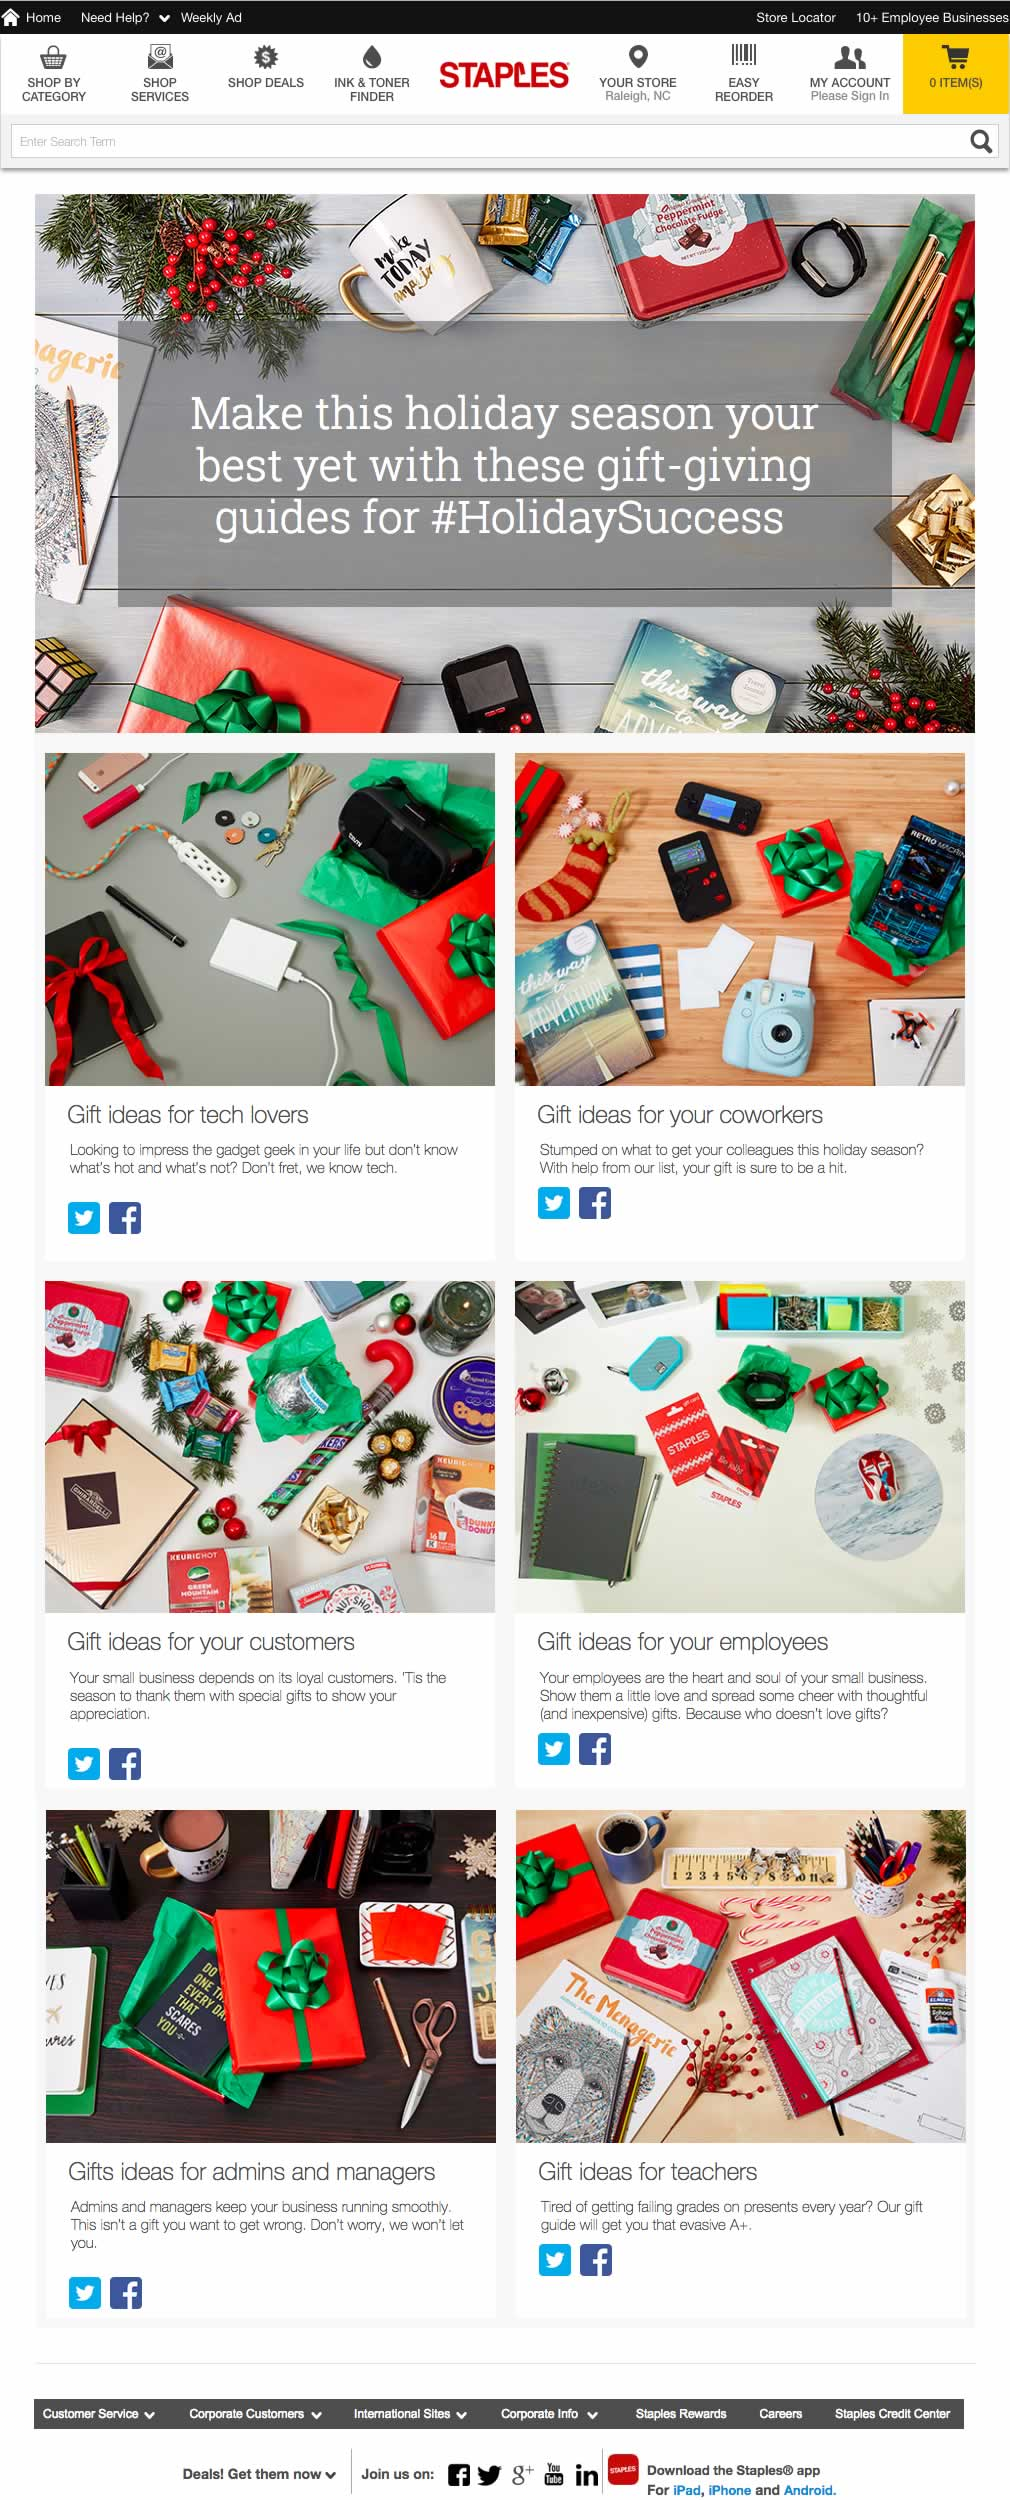 Staples social landing page for #holidaysuccess campaign, populated by The Word Factory